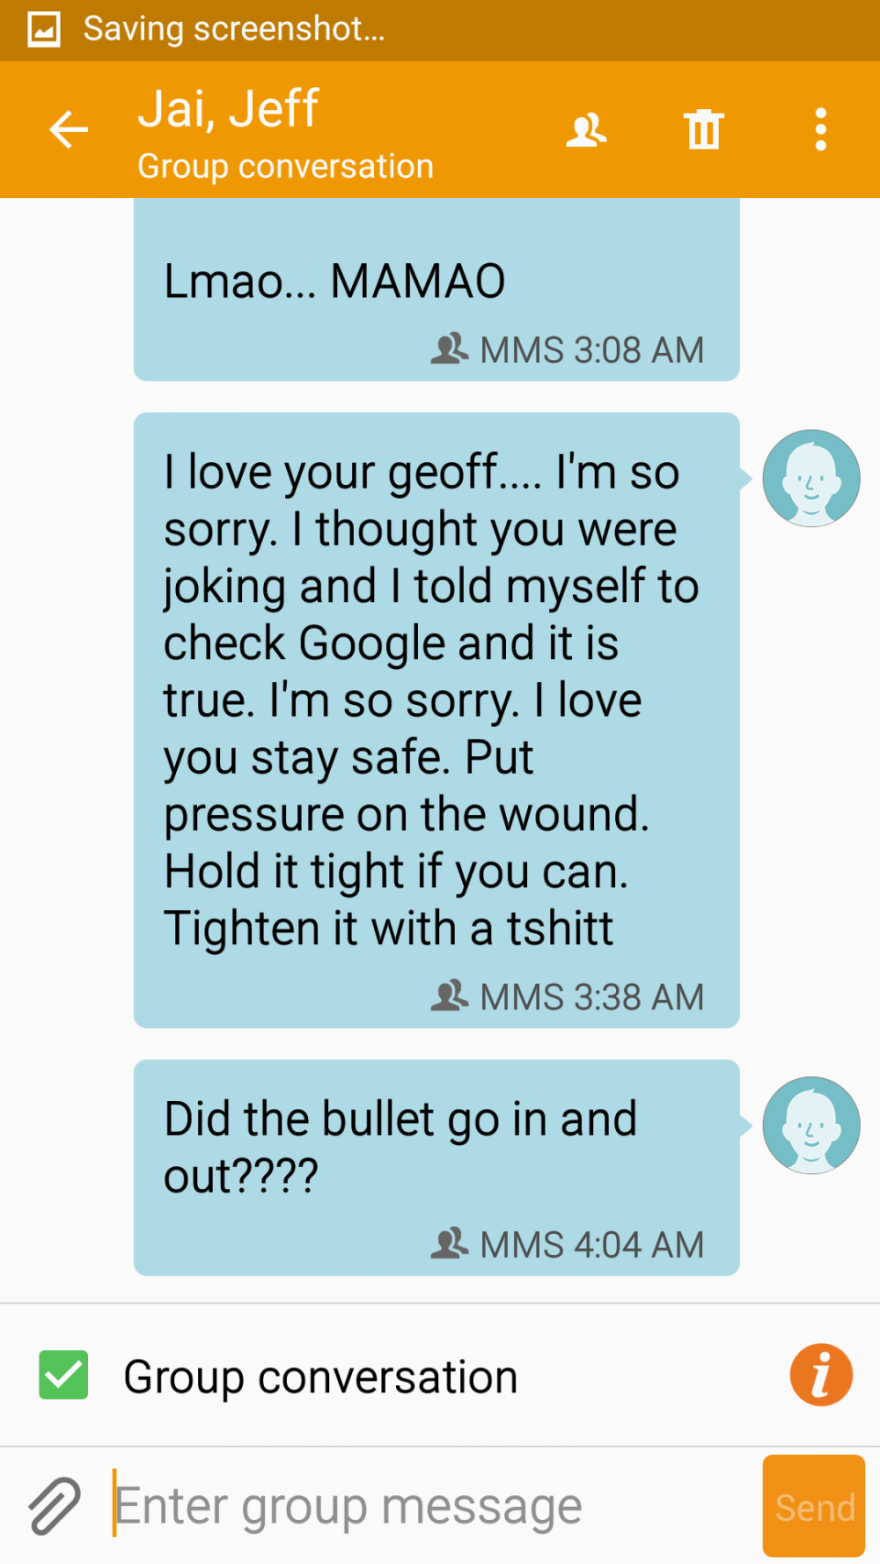 These are the text messages Santos received from his brother Jeff the night of the Pulse shooting.  (Photo credit Santos Rodriguez III)